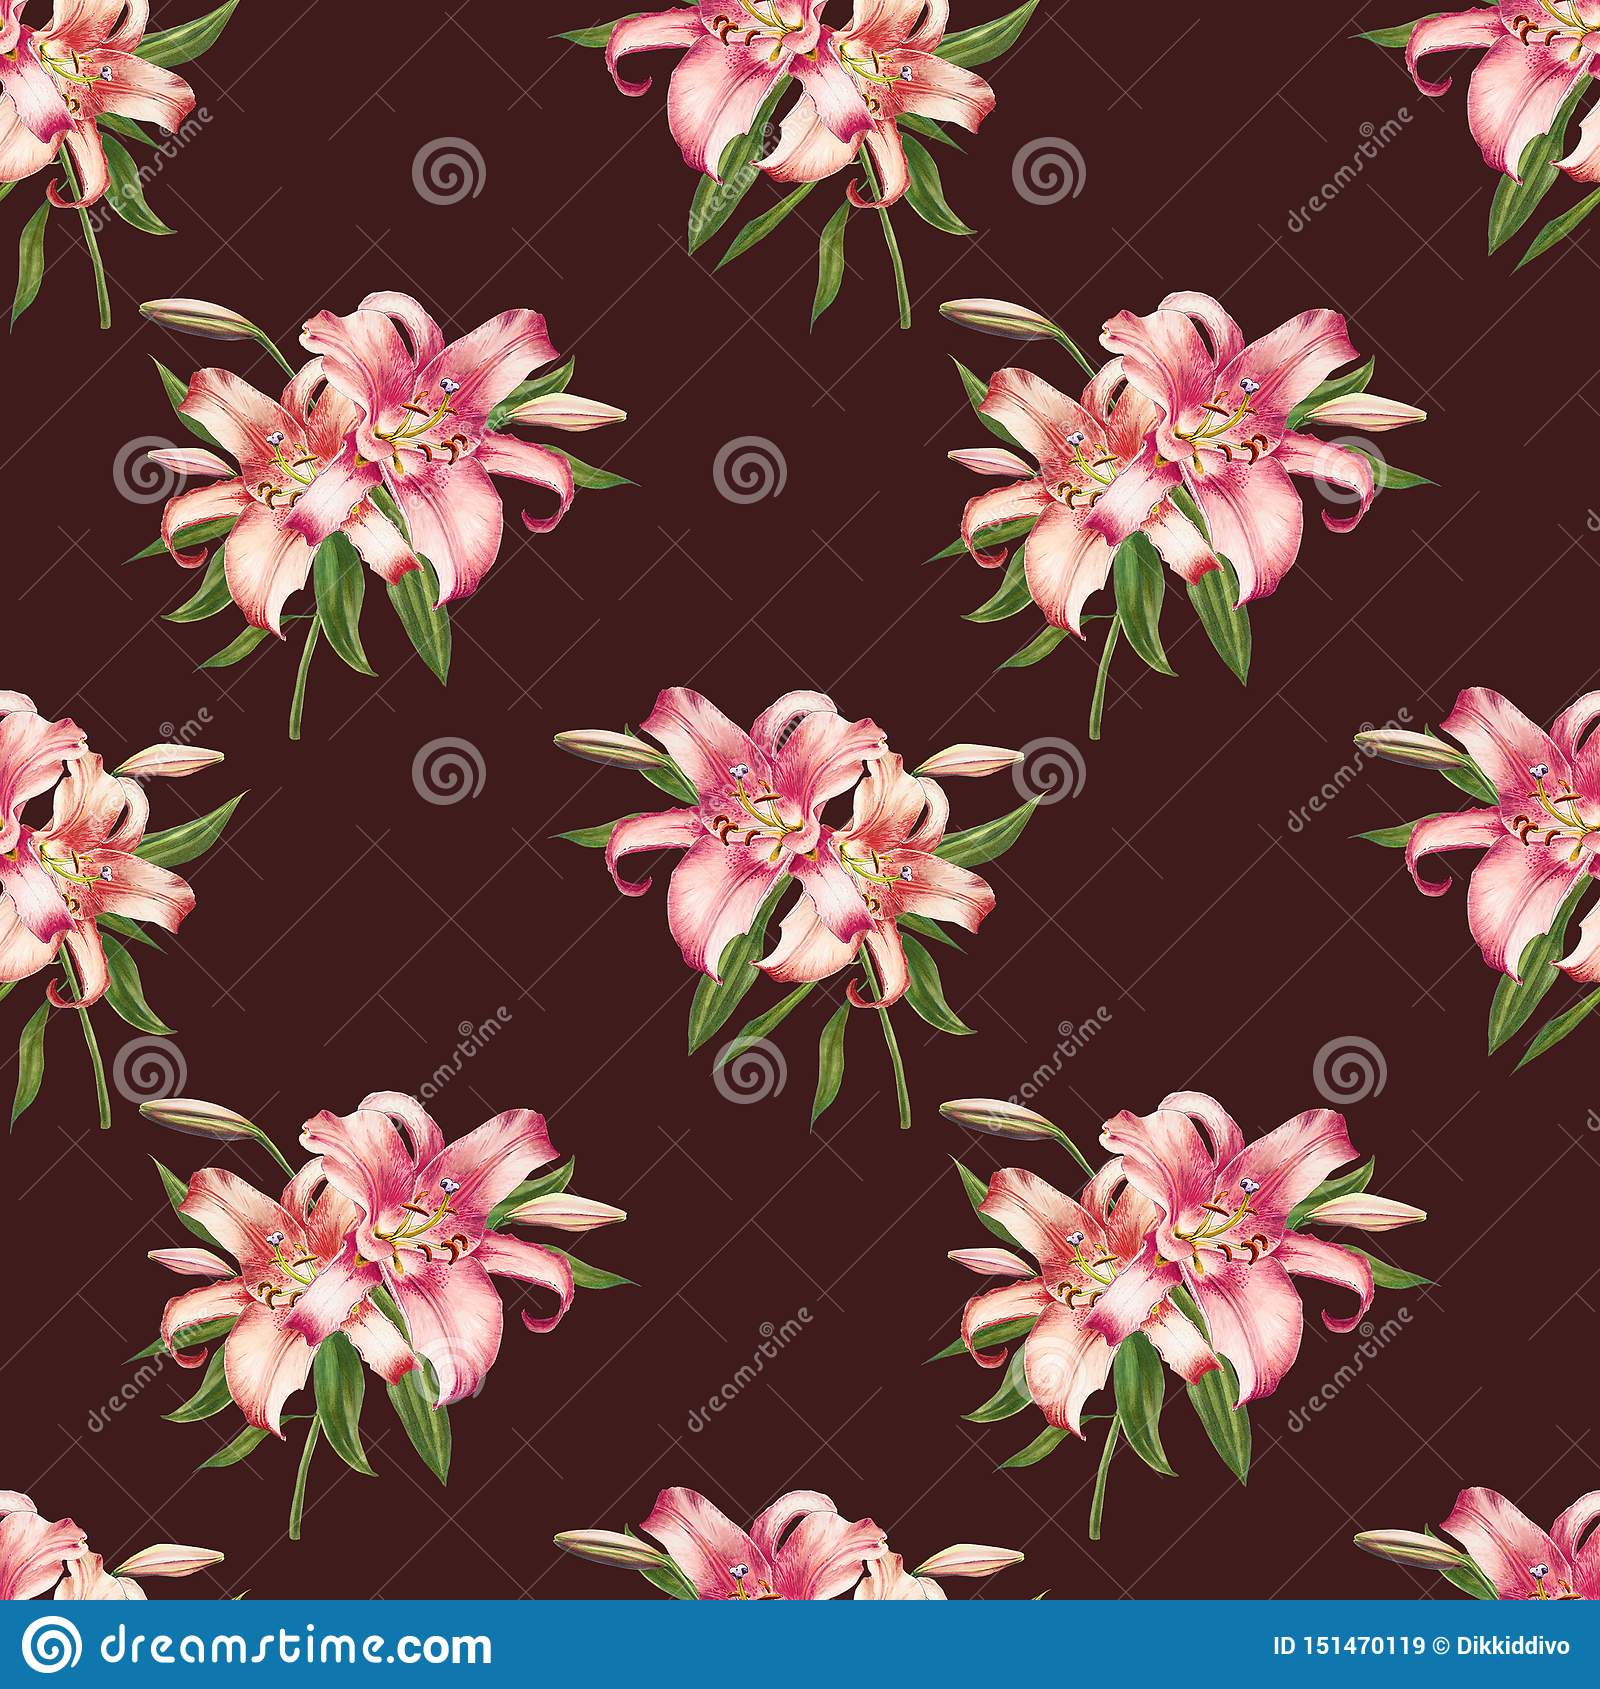 Beautiful white and pink lily seamless pattern. Bouquet of flowers. Floral print. Marker drawing.